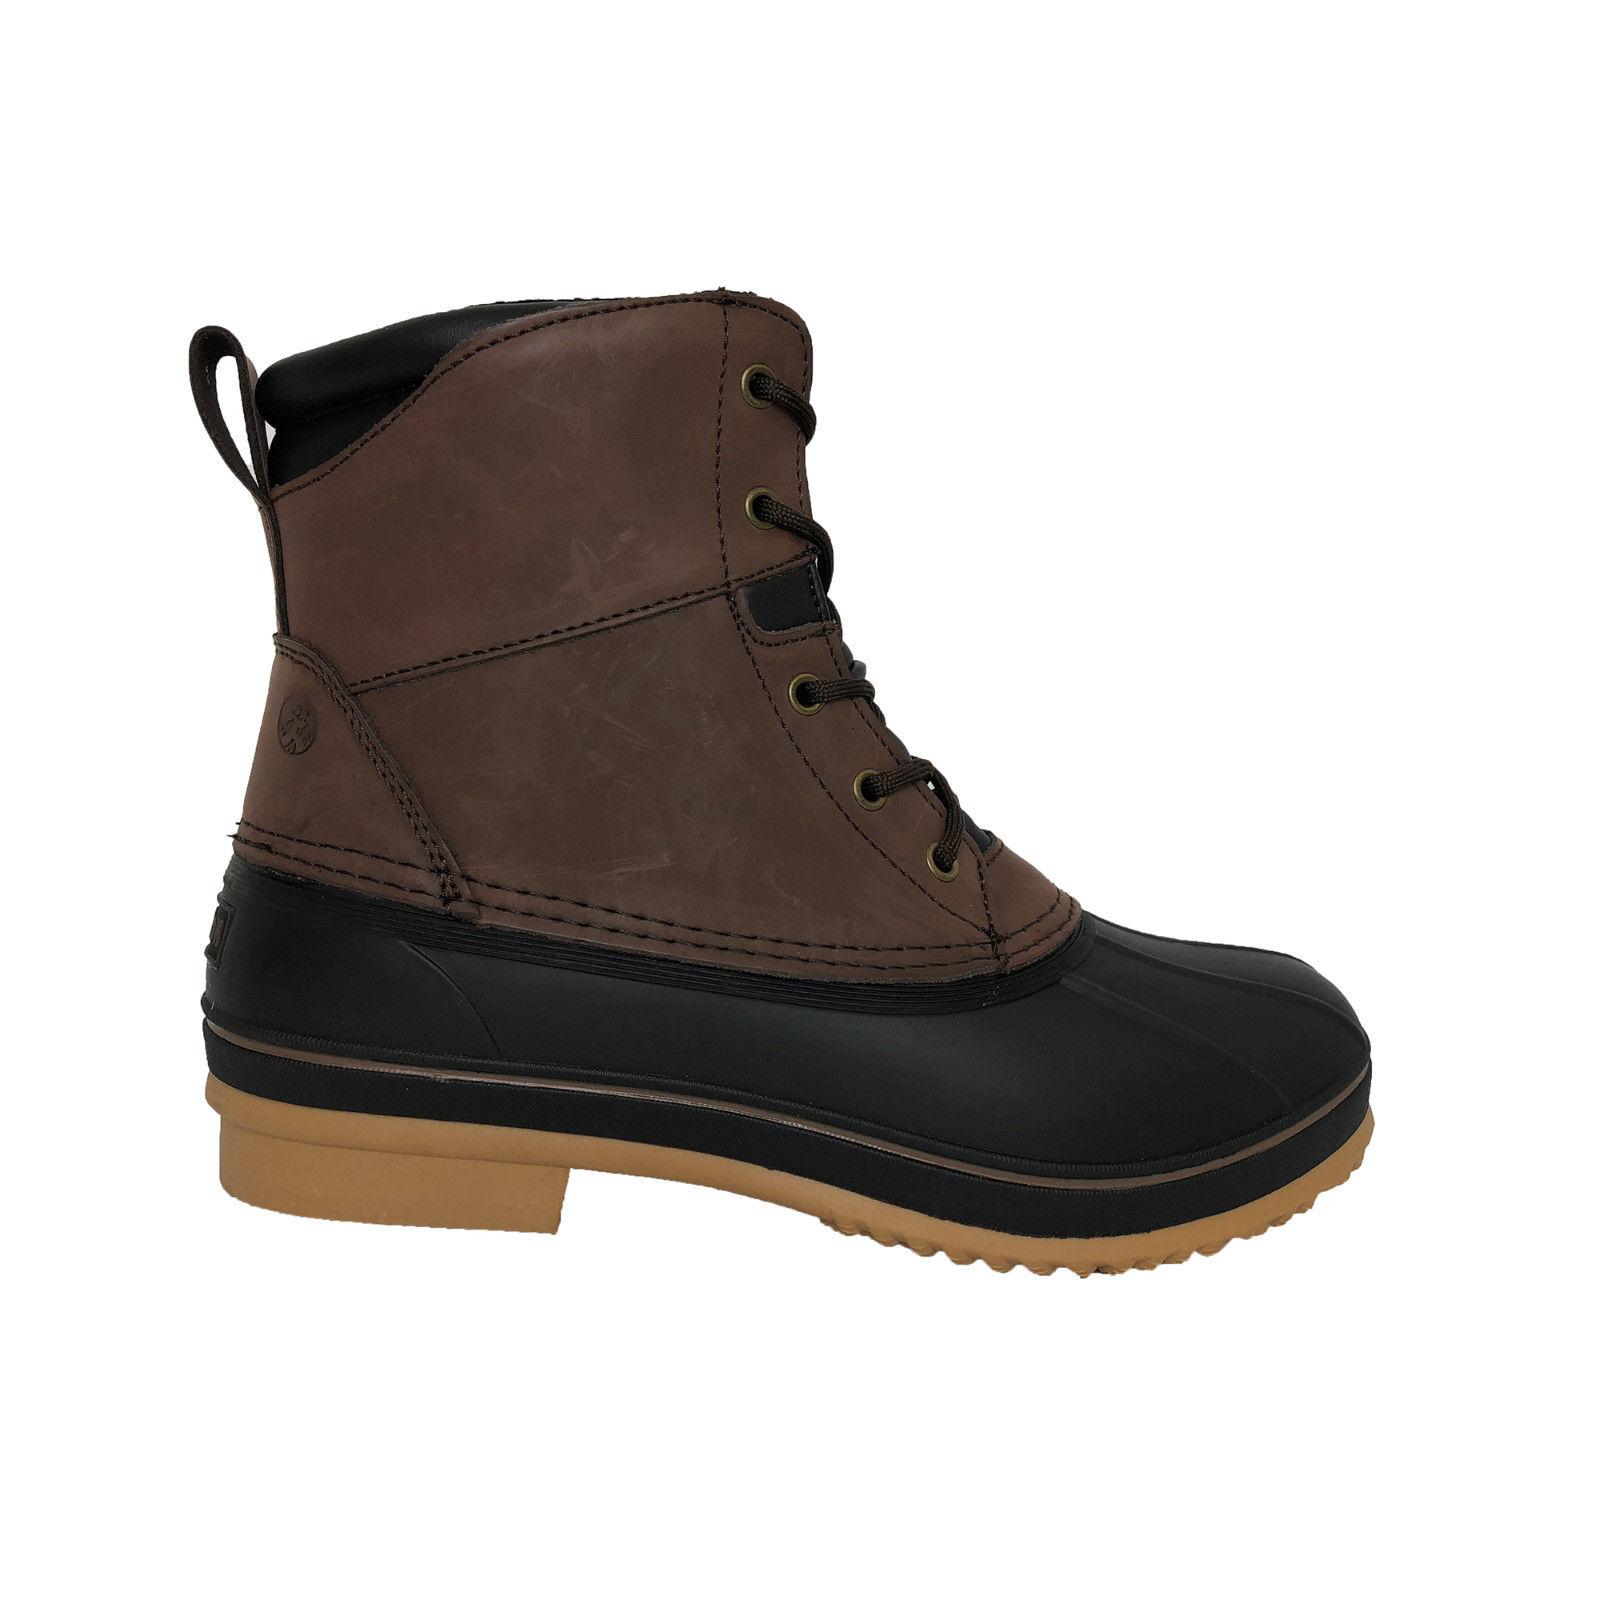 Northside Mens Boots Waterproof Snow Fully